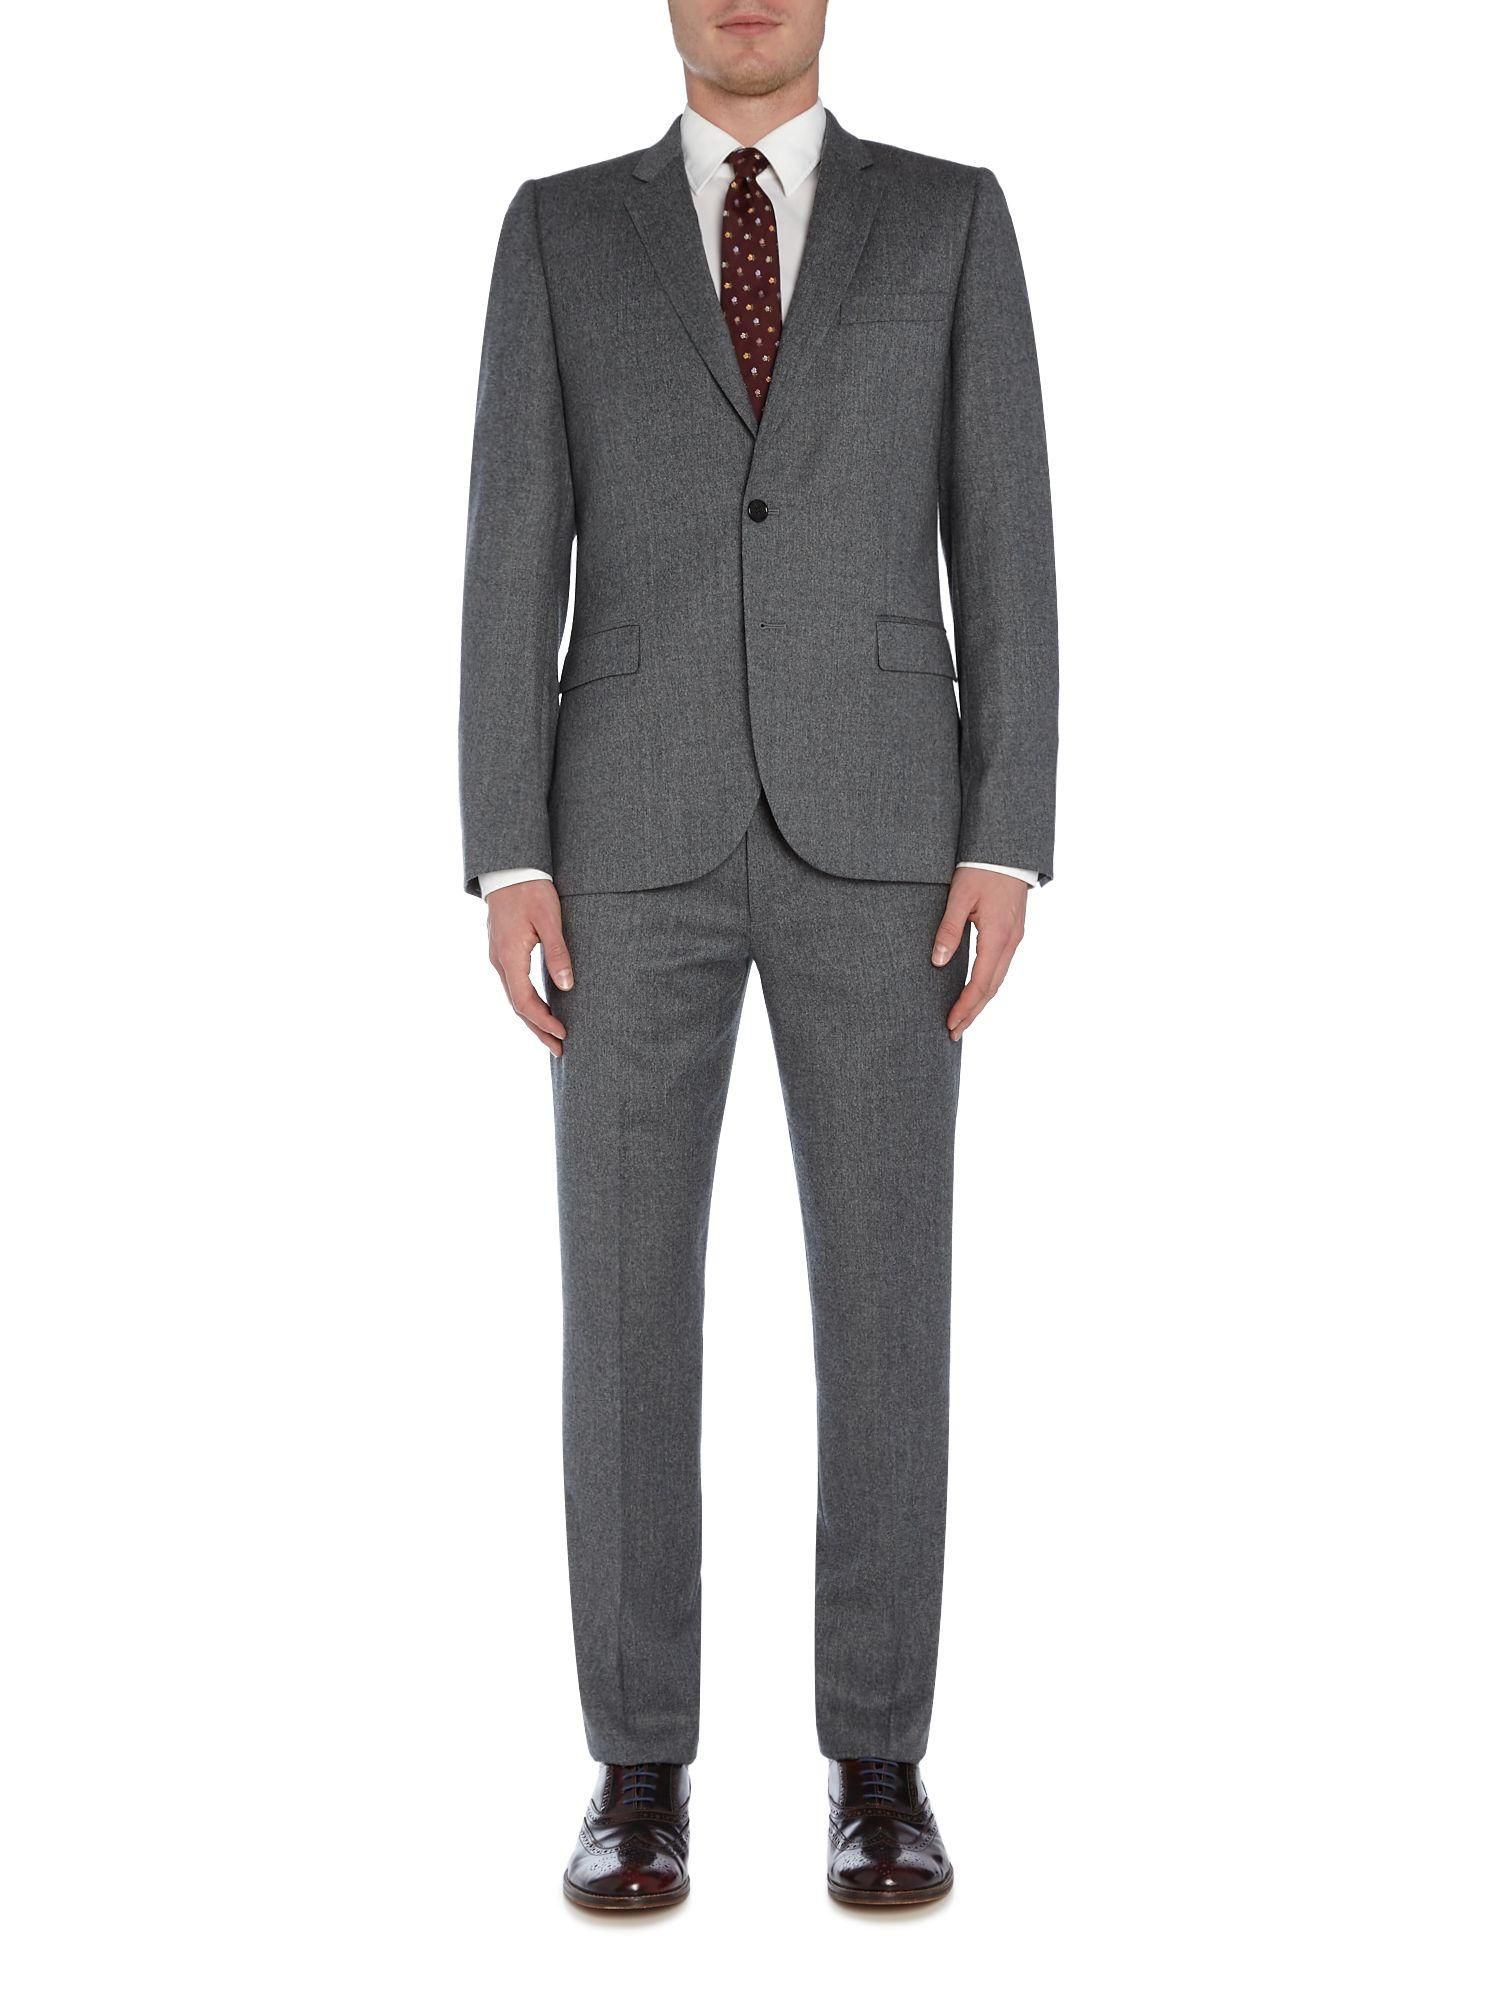 PS by Paul Smith Flannel Suit Jacket in Grey (Grey) for Men